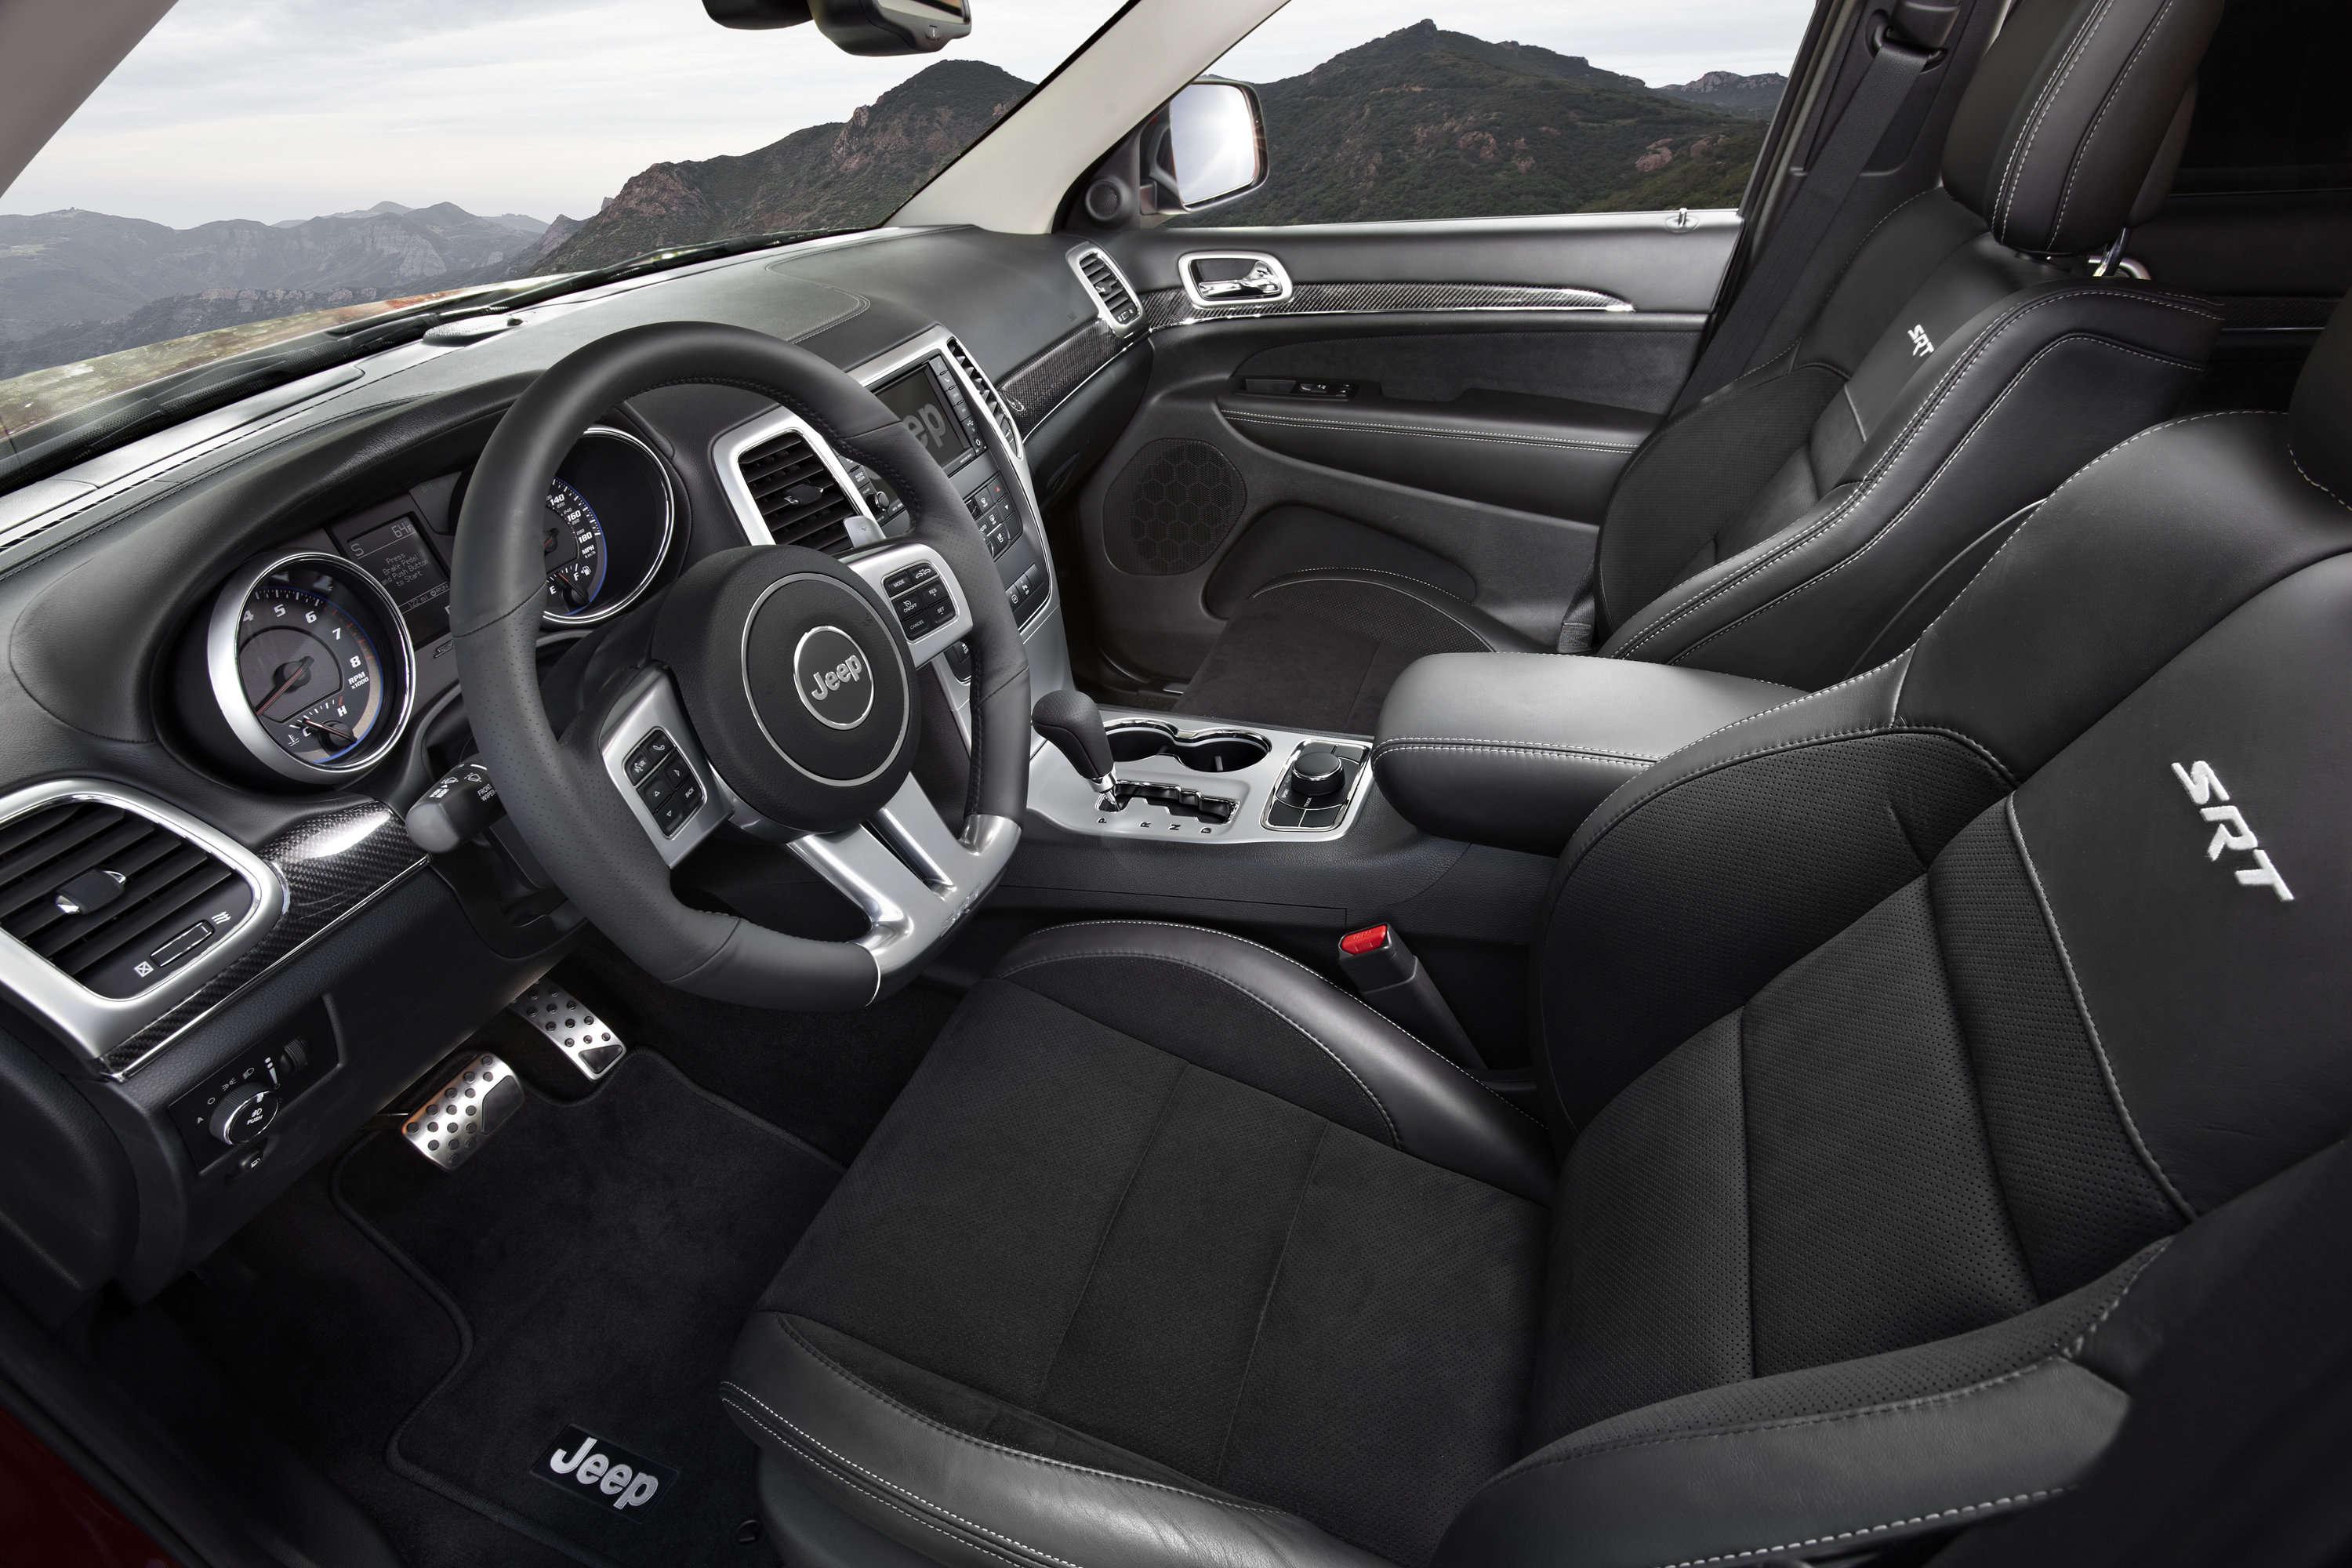 Quick Drive: 2012 Jeep Grand Cherokee SRT8